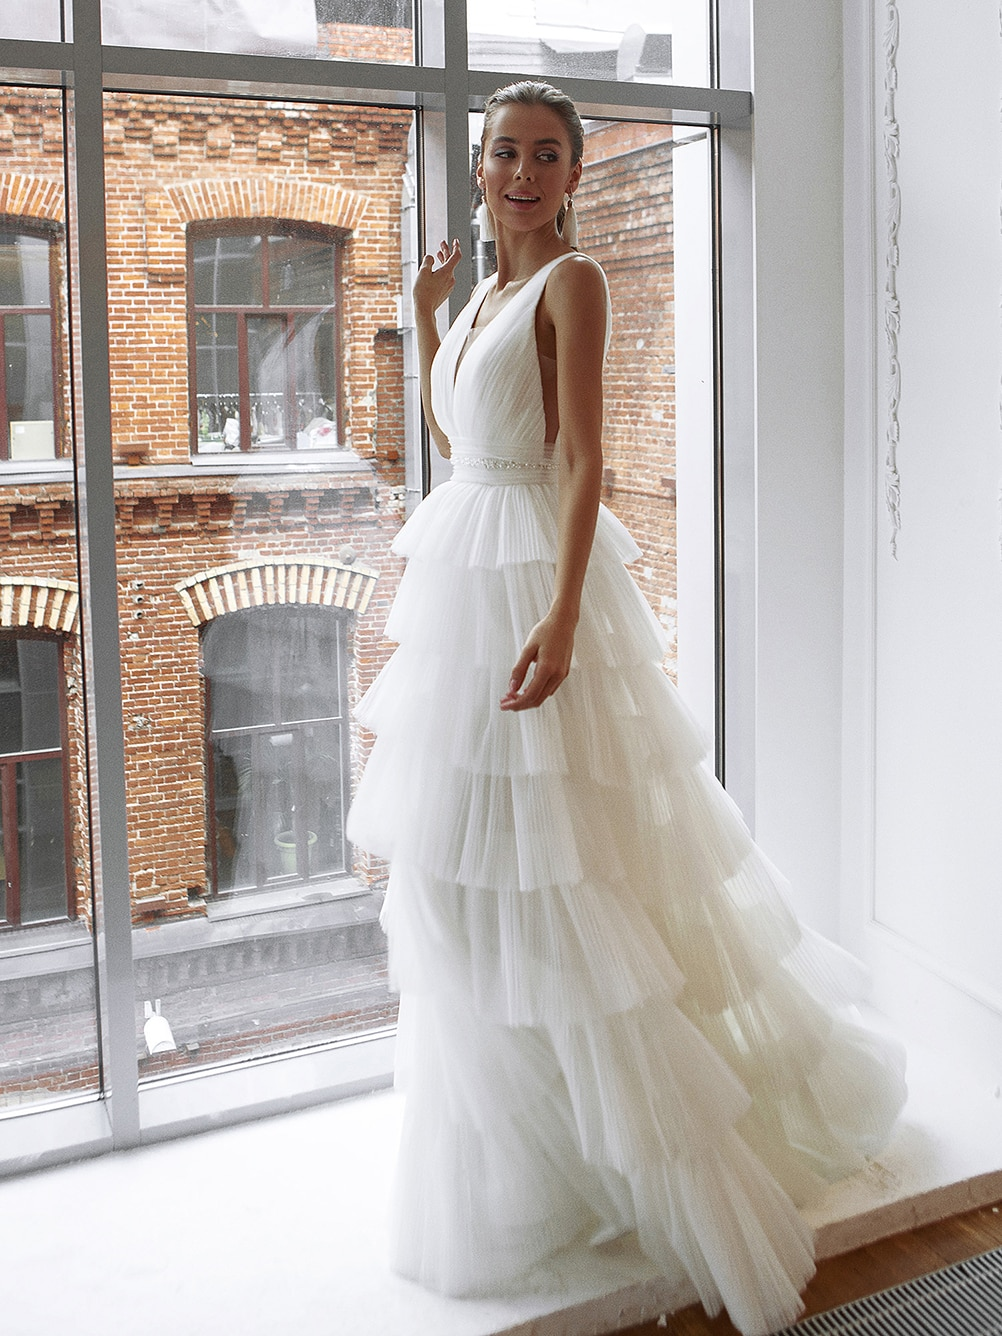 Tiered Pleated Tulle Princess Wedding Dress V Neck Ruched Waist Sleevelss Low Cut Back Beading 2021 Long Bride Gown Custom Made